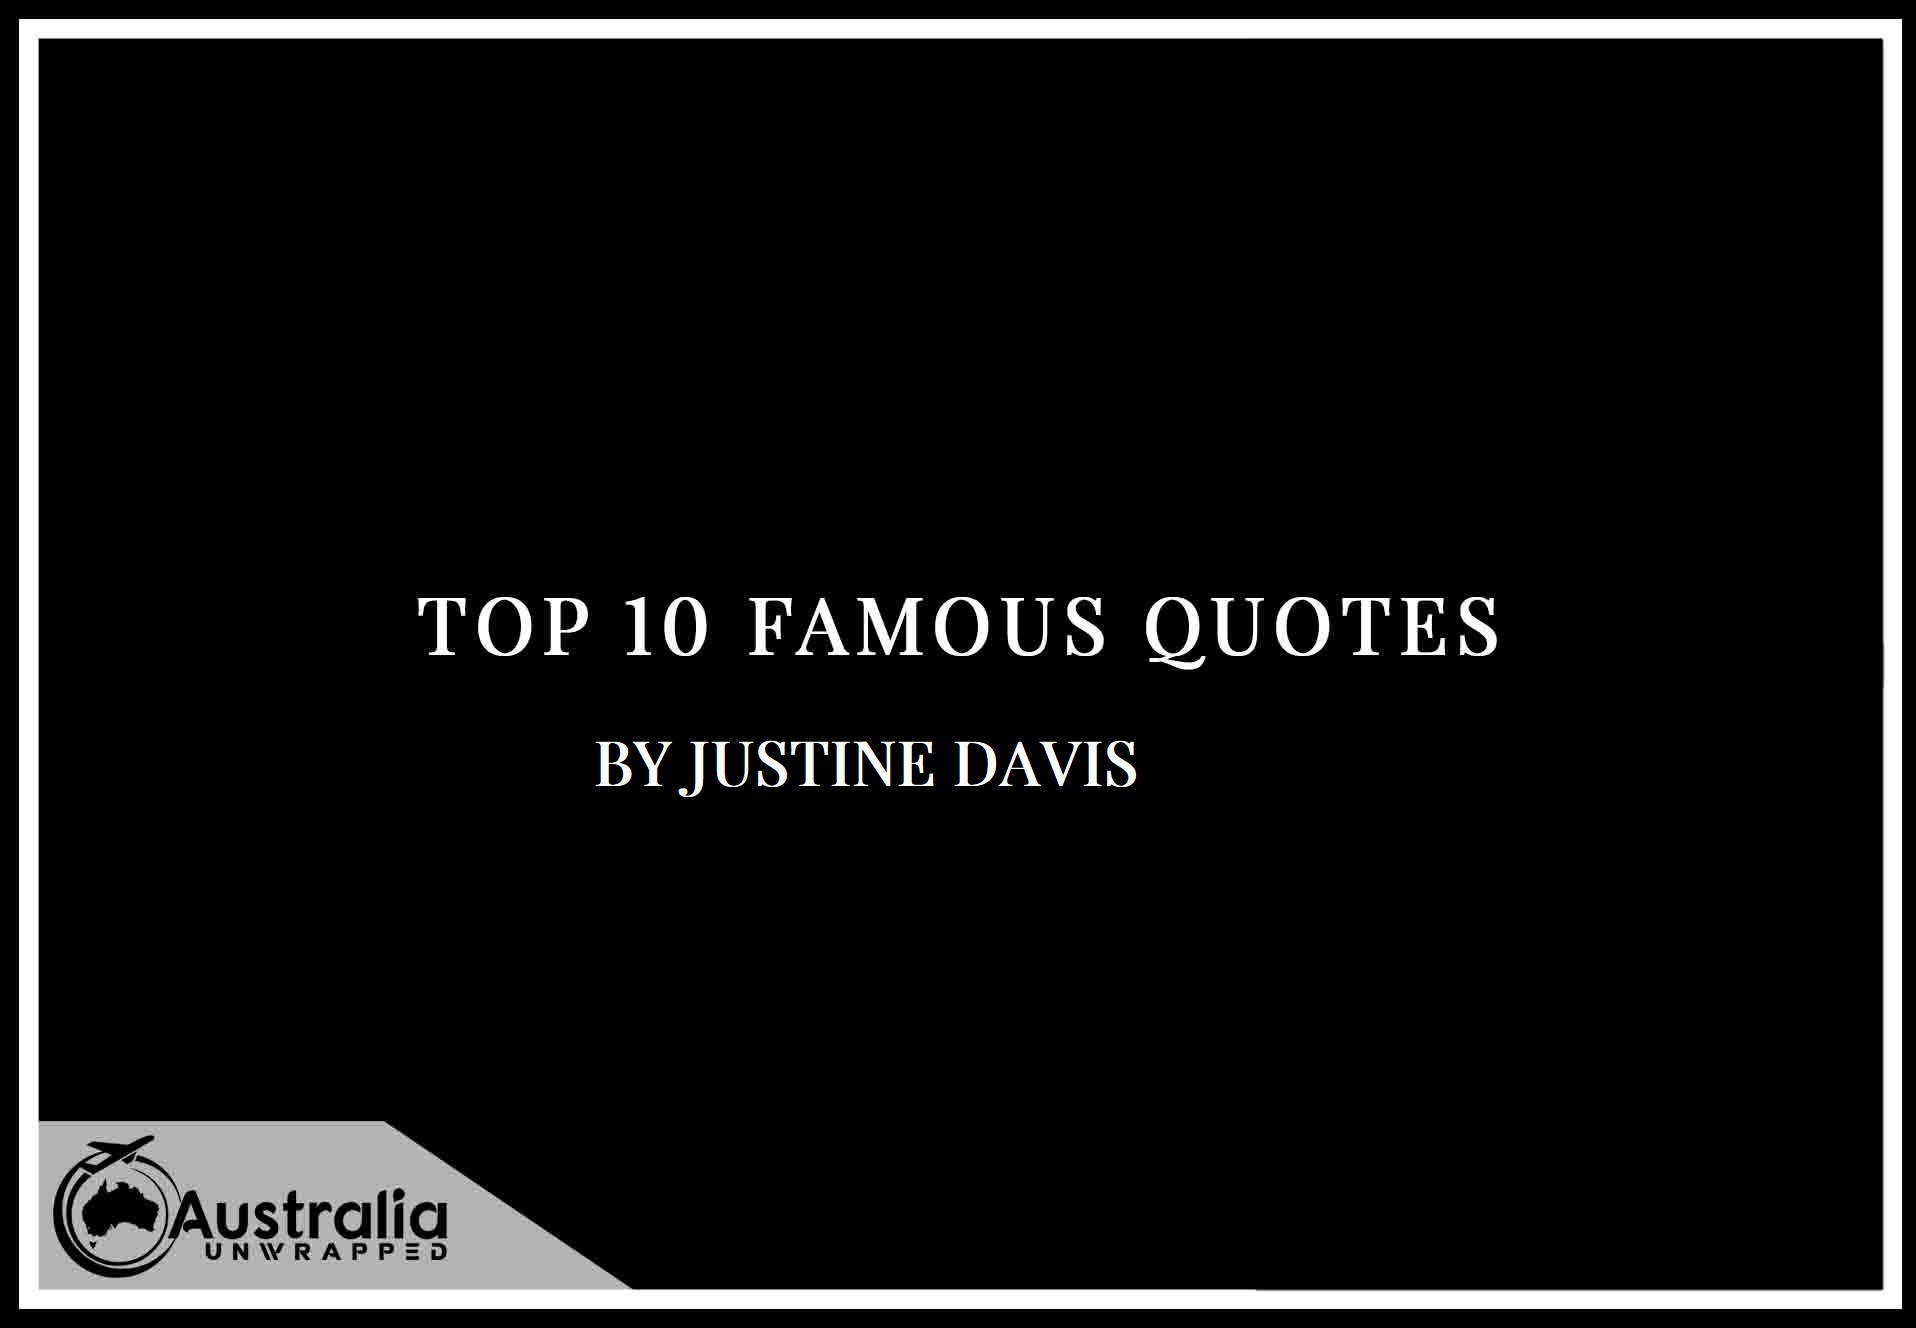 Top 10 Famous Quotes by Author Justine Davis